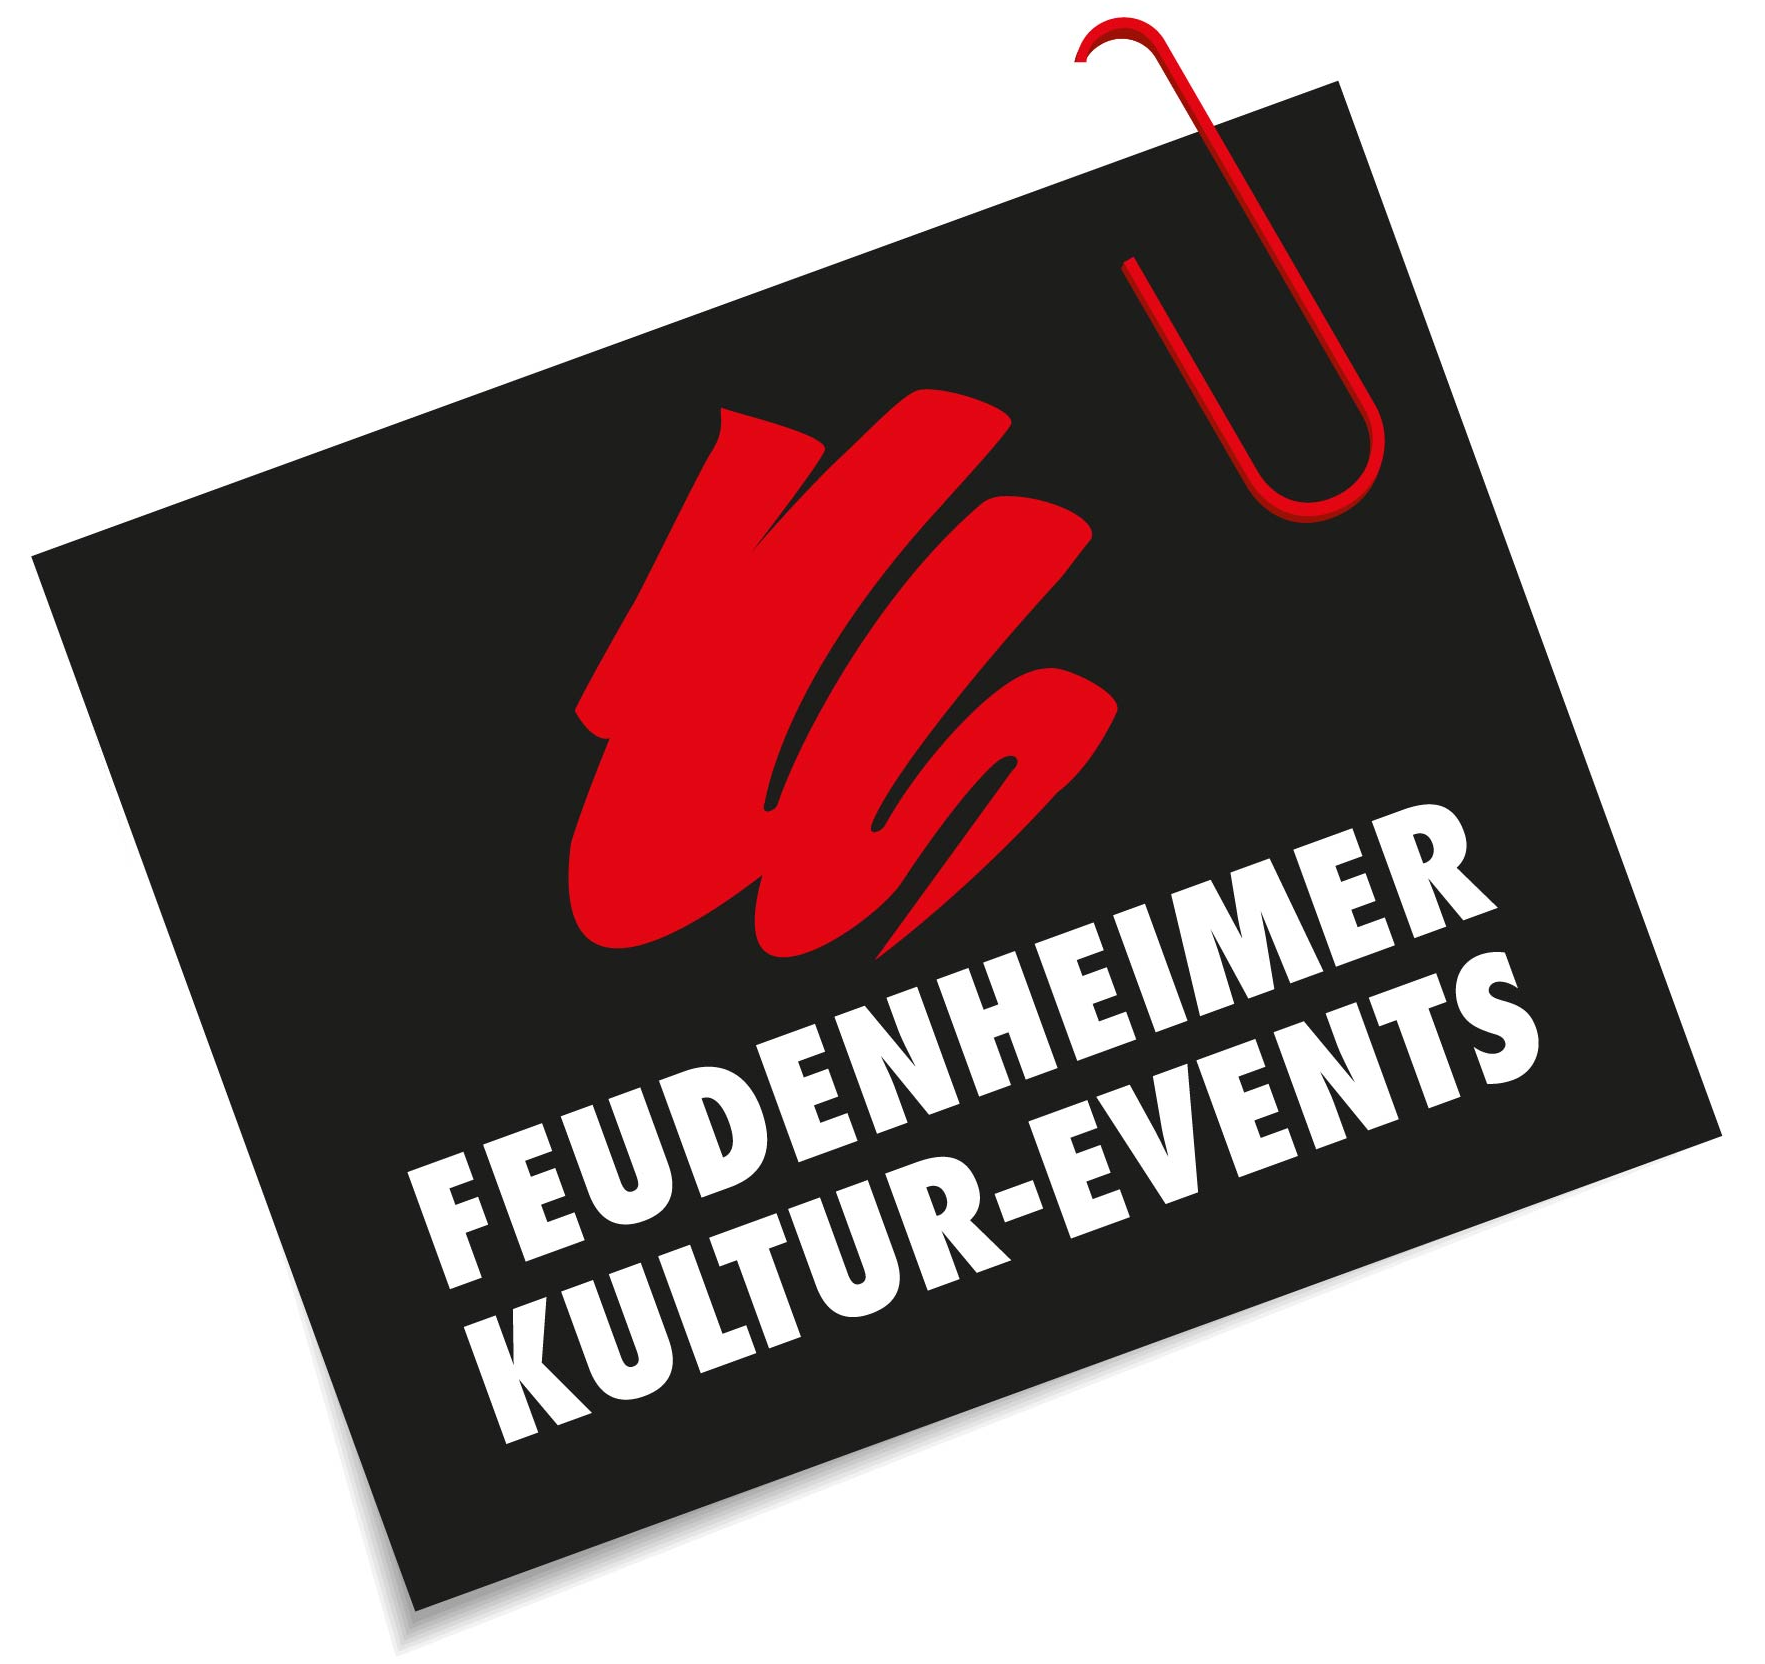 Feudenheimer   Kultur-Events